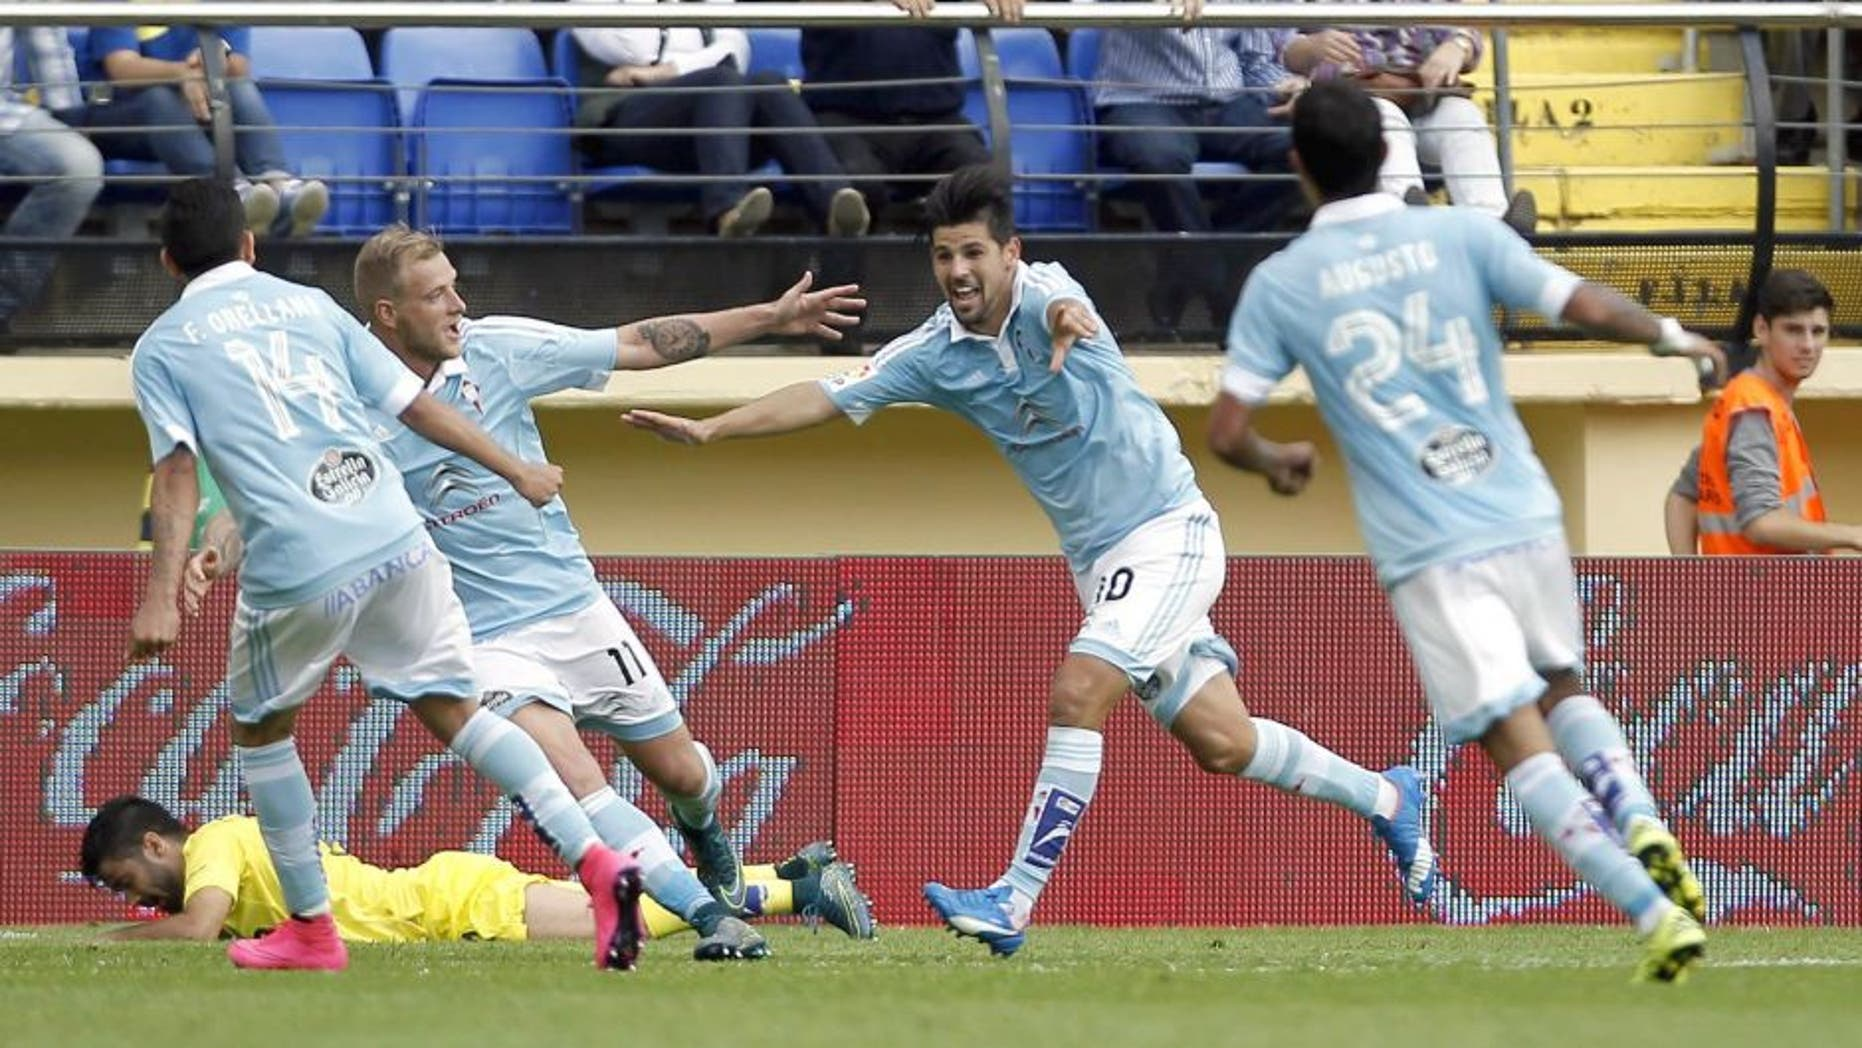 Celta Vigo's forward Nolito (2ndR) celebrates his goal with teammates during the Spanish league football match Villarreal CF vs RC Celta de Vigo at El Madrigal stadium in Villareal on October 18, 2015. AFP PHOTO/ JOSE JORDAN (Photo credit should read JOSE JORDAN/AFP/Getty Images)